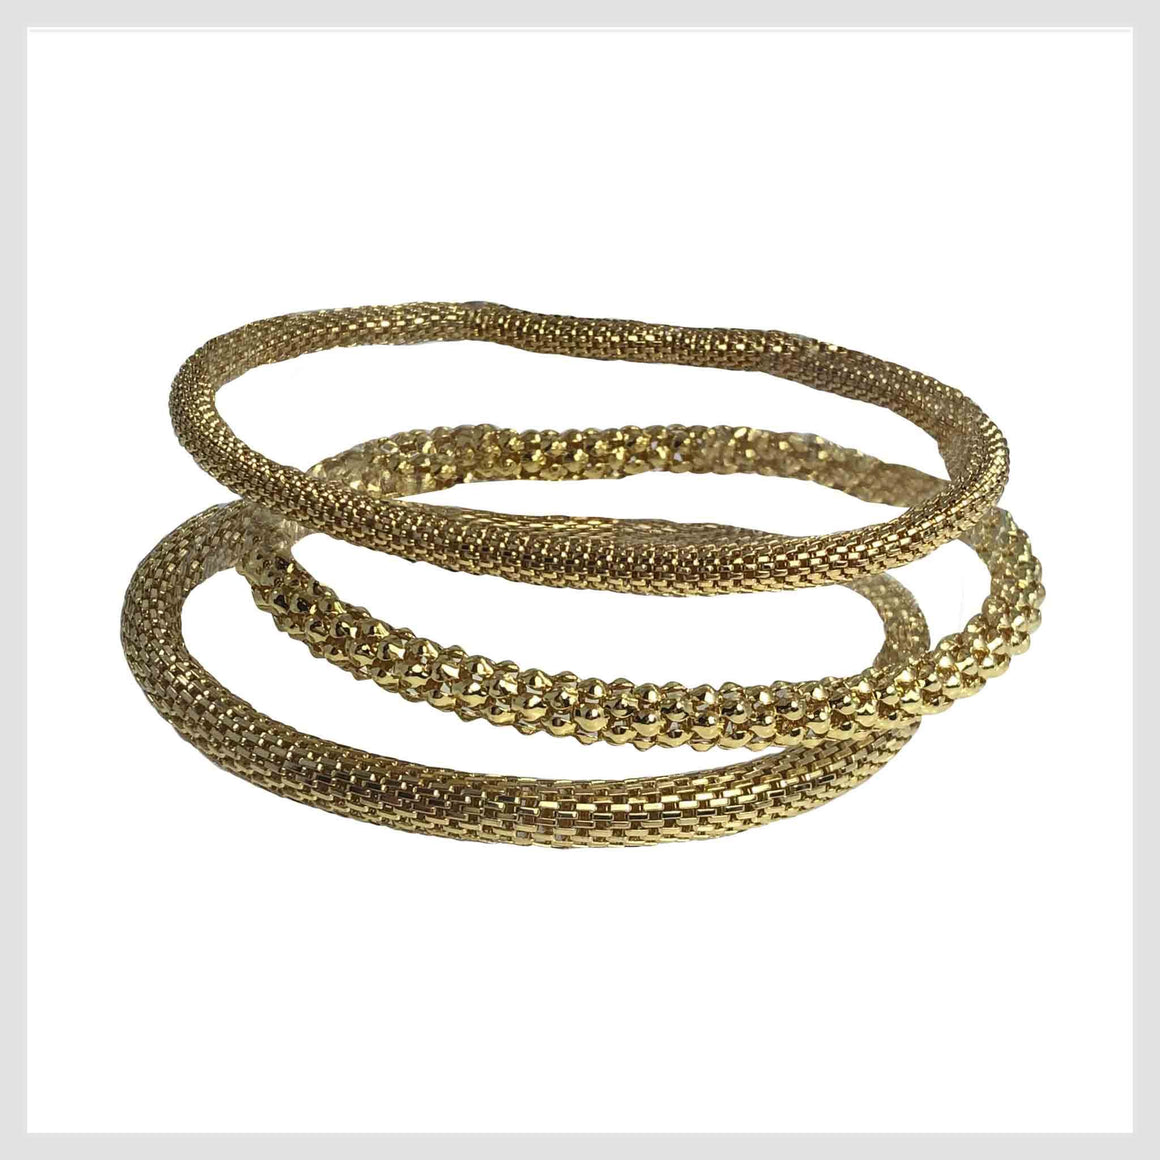 12K Gold Plated Mesh Chain Stretch Bracelets Set of 3 (4mm and 6mm smooth, 6mm textured) - Beads and Dangles